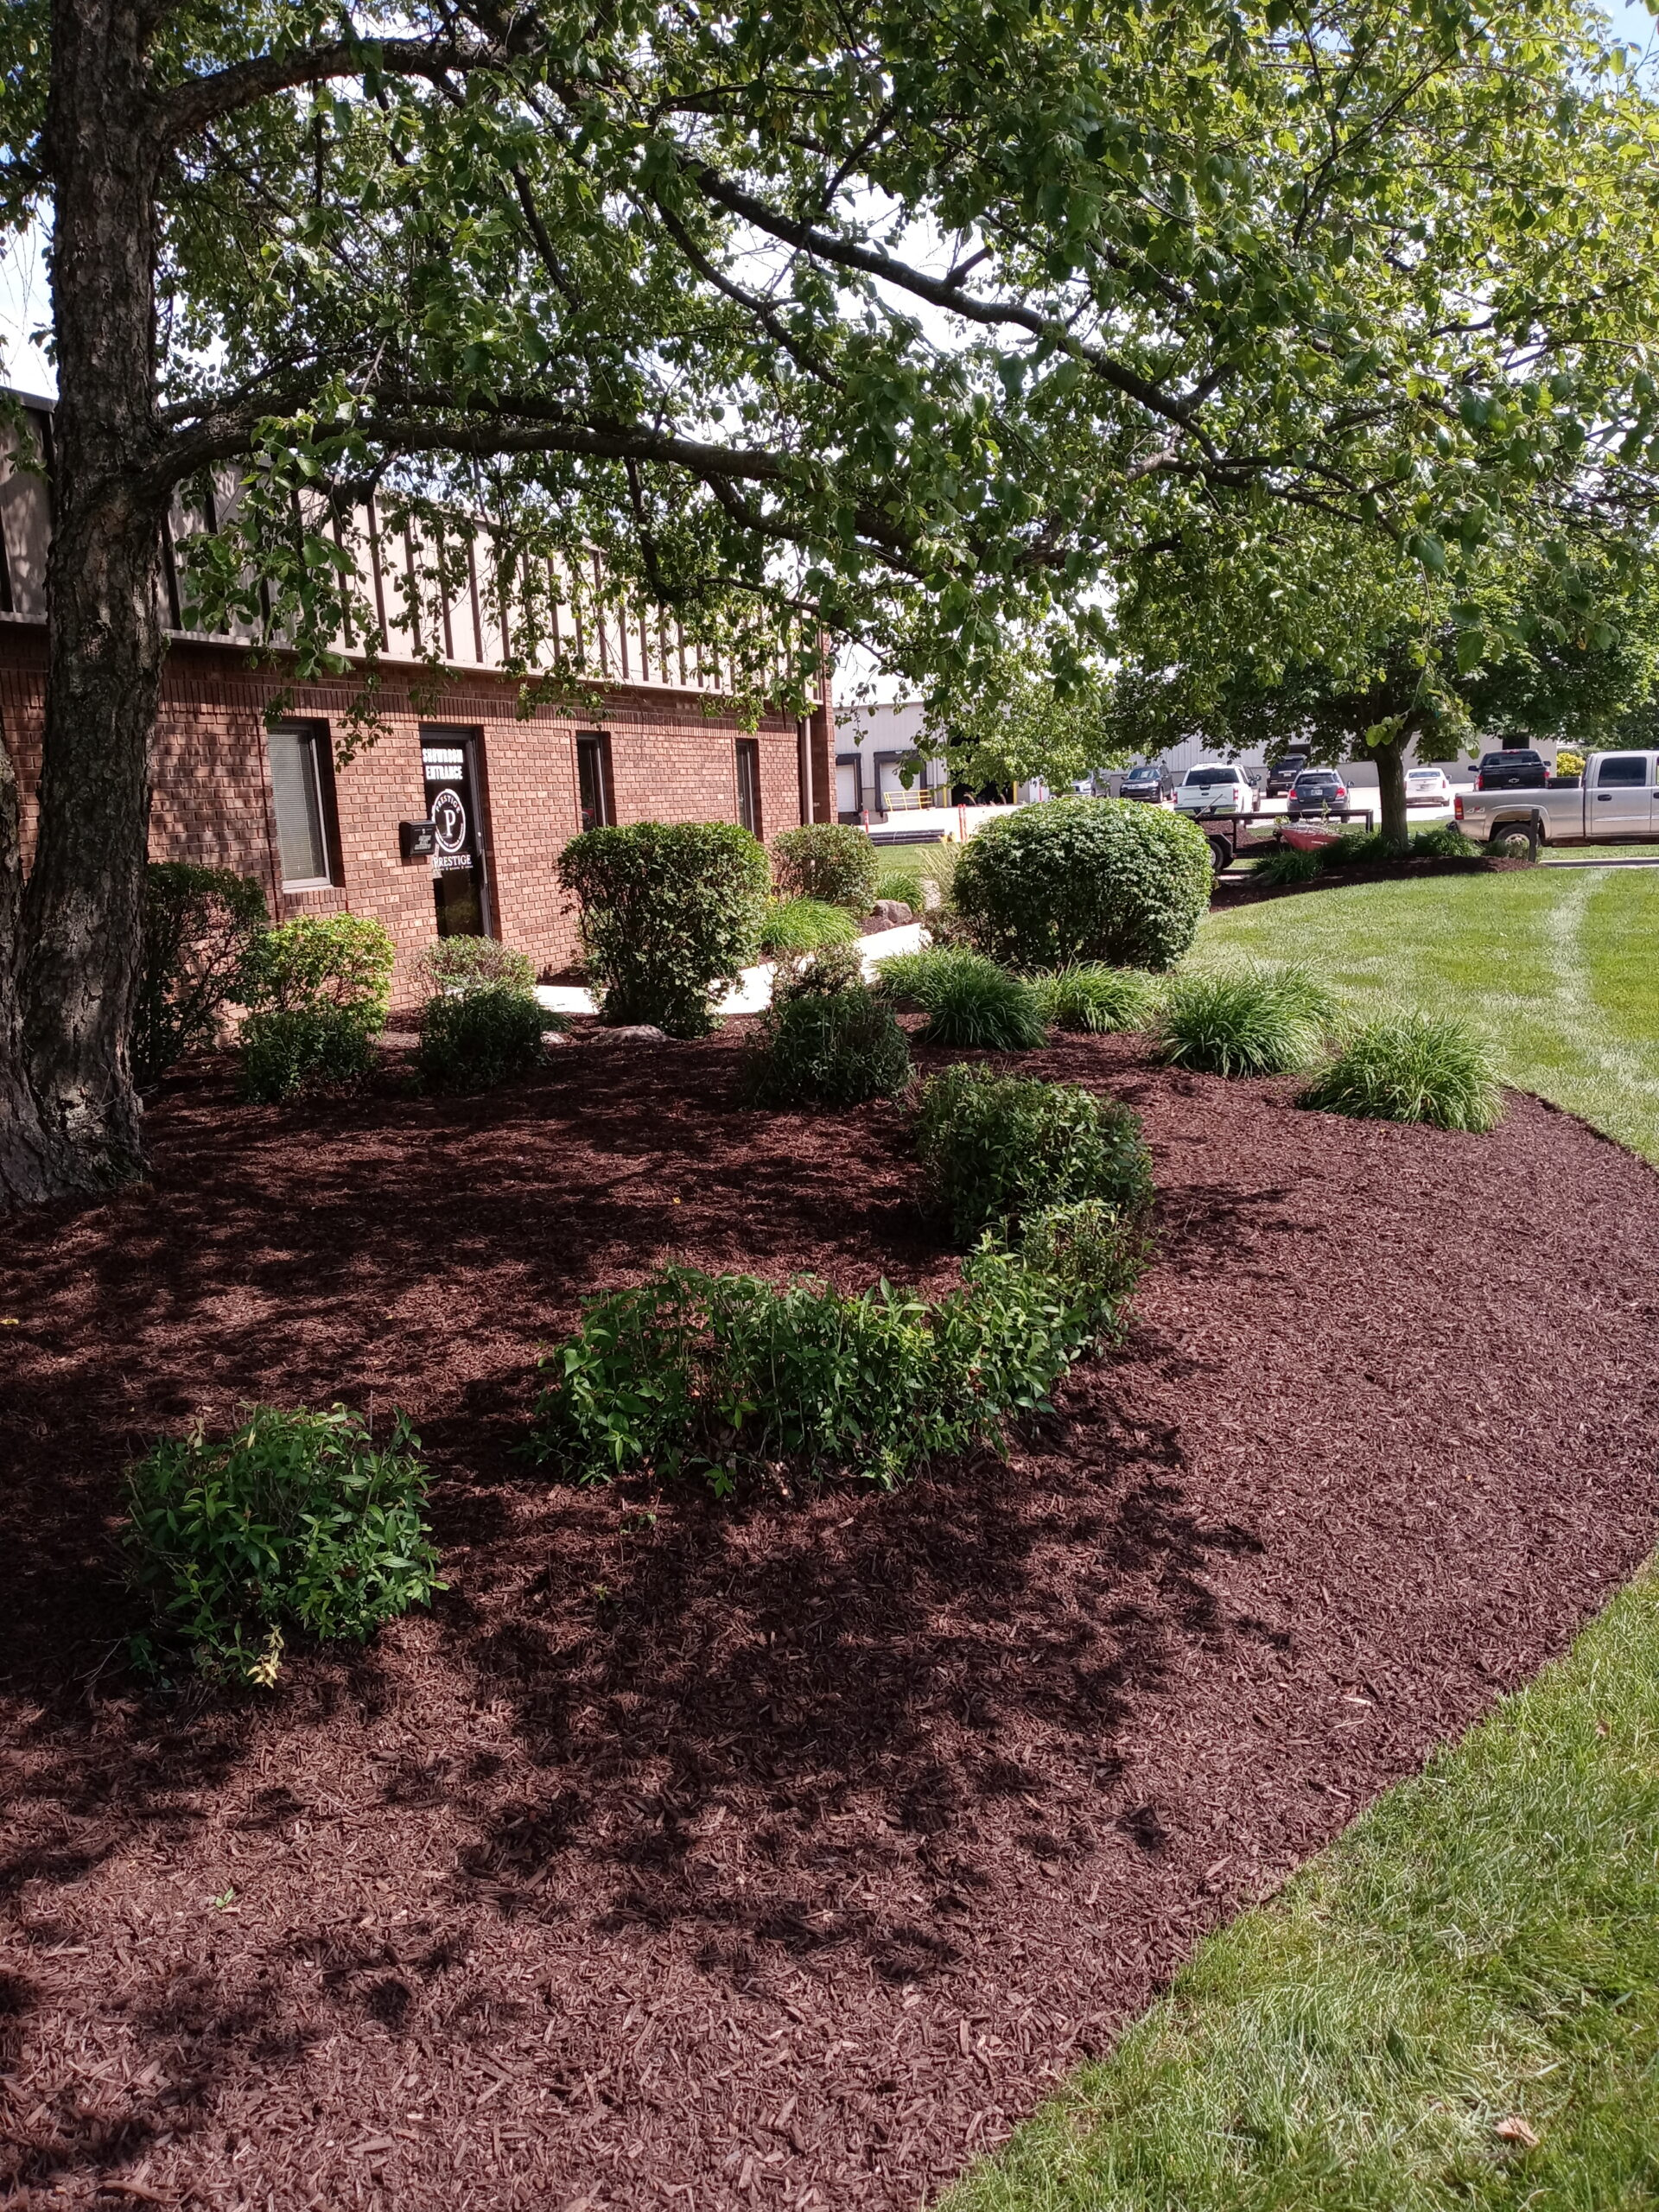 Landscaping and Mowing Services, Commercial, Greater Fort Wayne Area